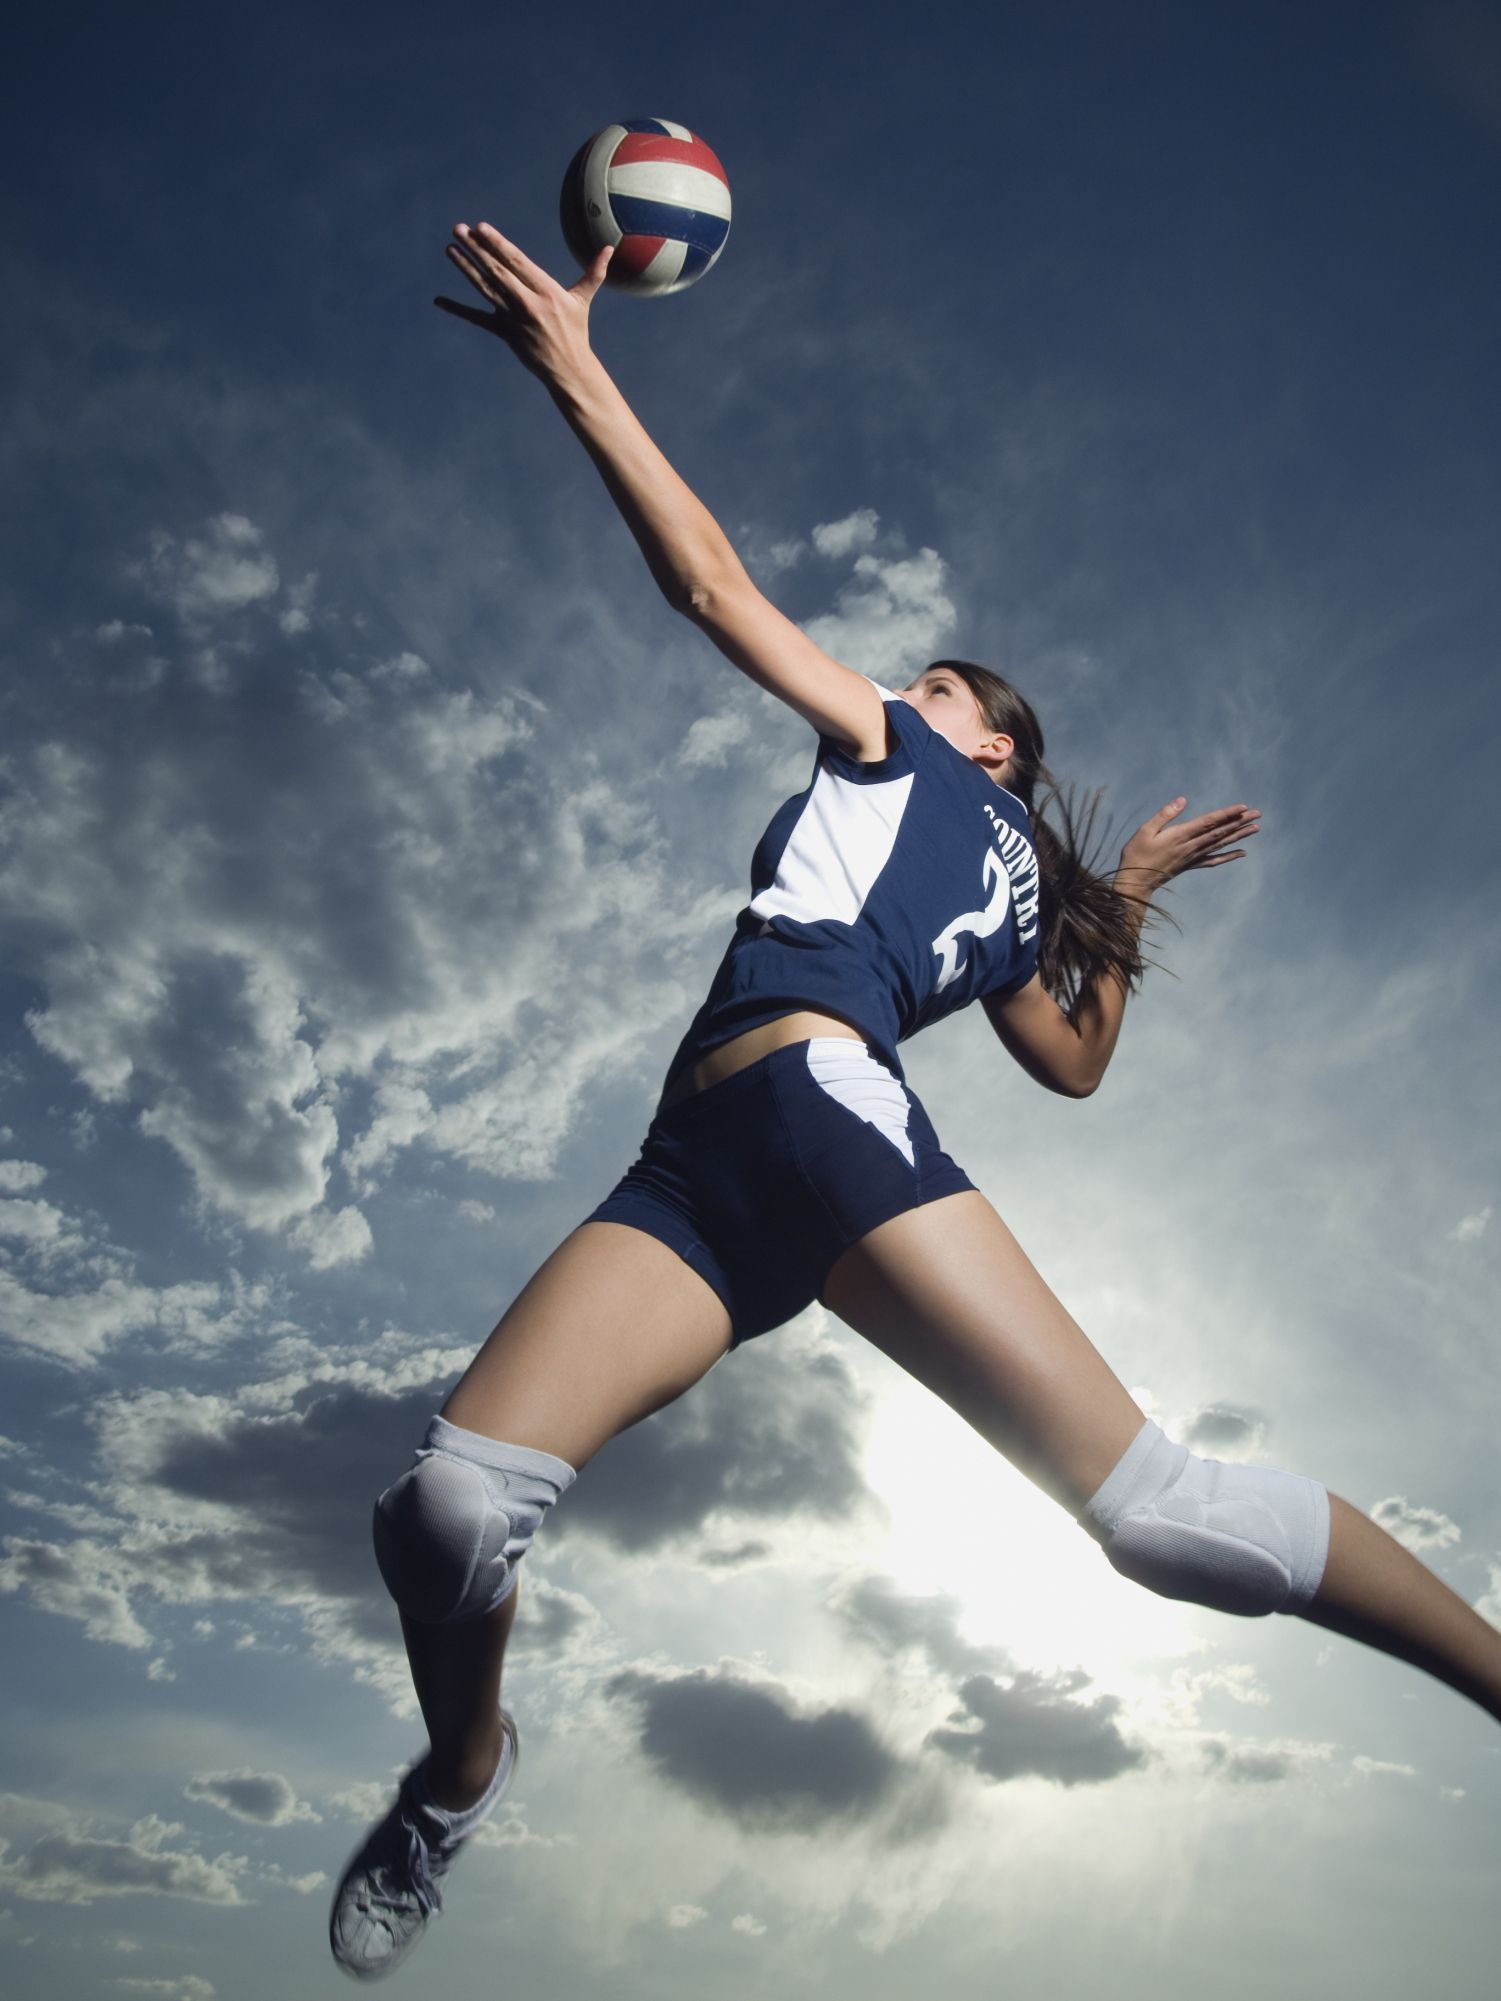 How To Successfully Complete The Jump Serve In Volleyball Volleyball Photography Volleyball Poses Volleyball Photos